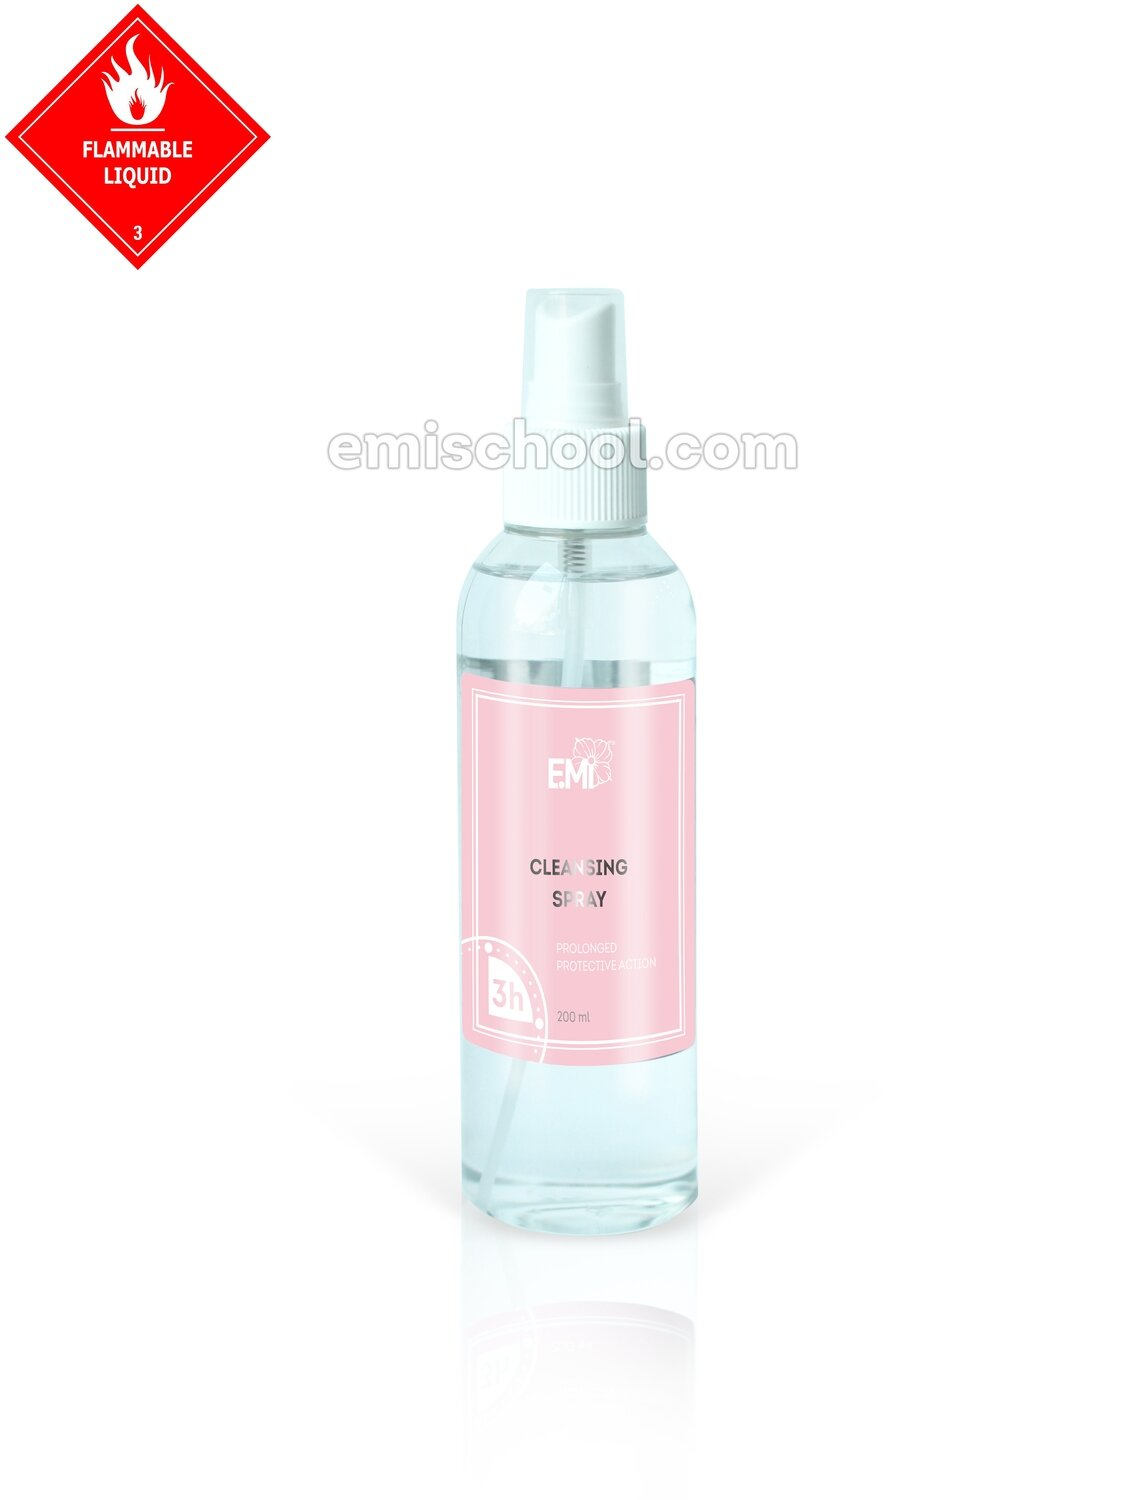 Cleansing spray 200 ml.